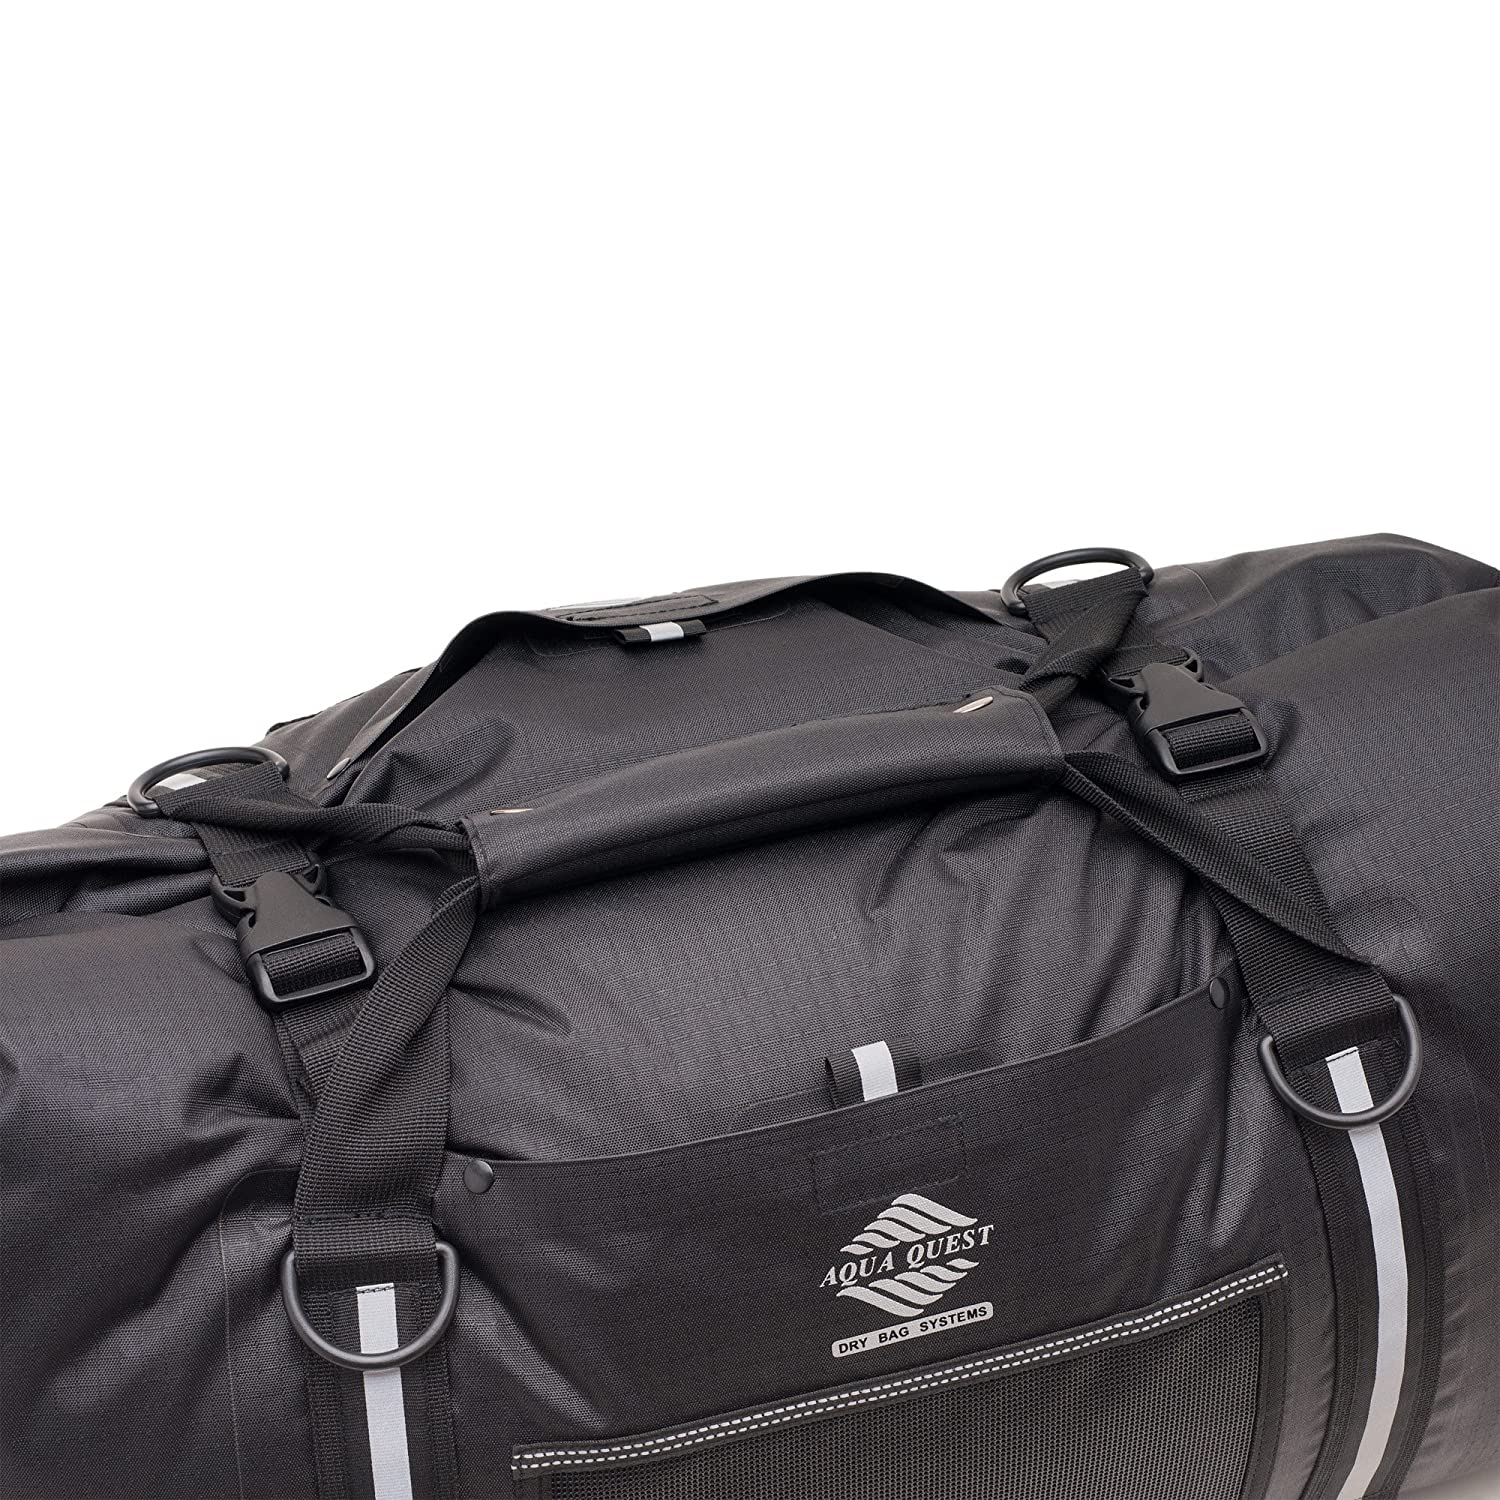 Firstgear Torrent Waterproof Duffel Bag 70 Liter Black- Fenix ... df9a07b98bb89